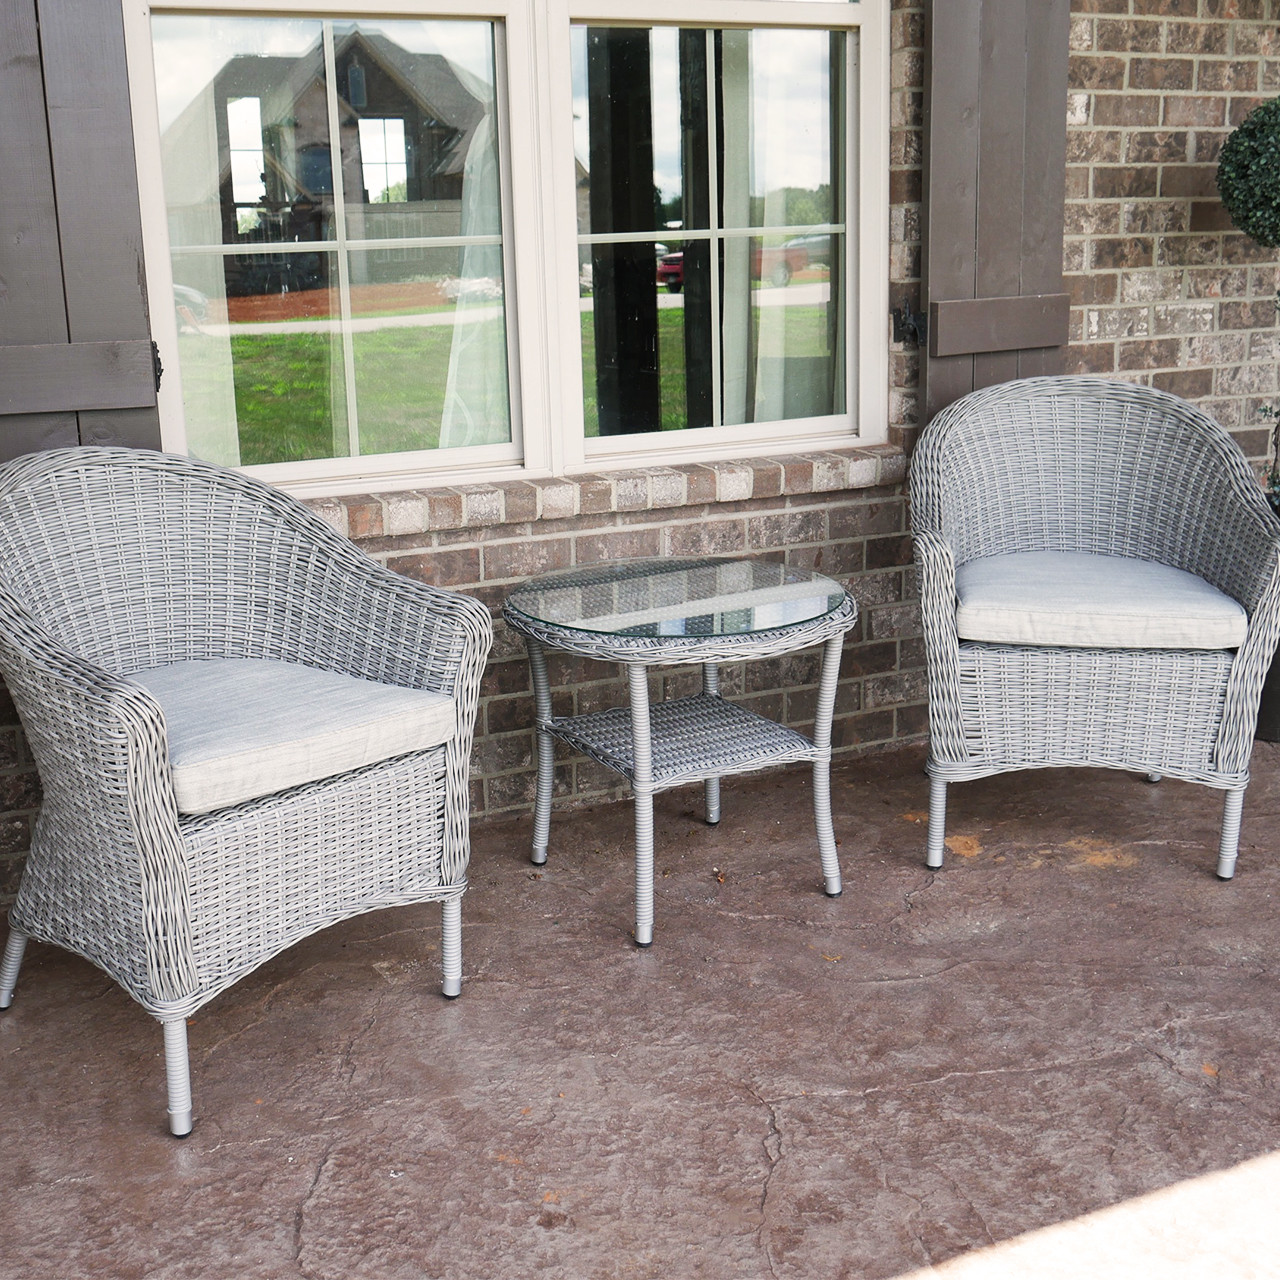 Metal Bistro Table And Chairs Pleasant Bay 3 Piece Outdoor Wicker Patio Bistro Set With Table